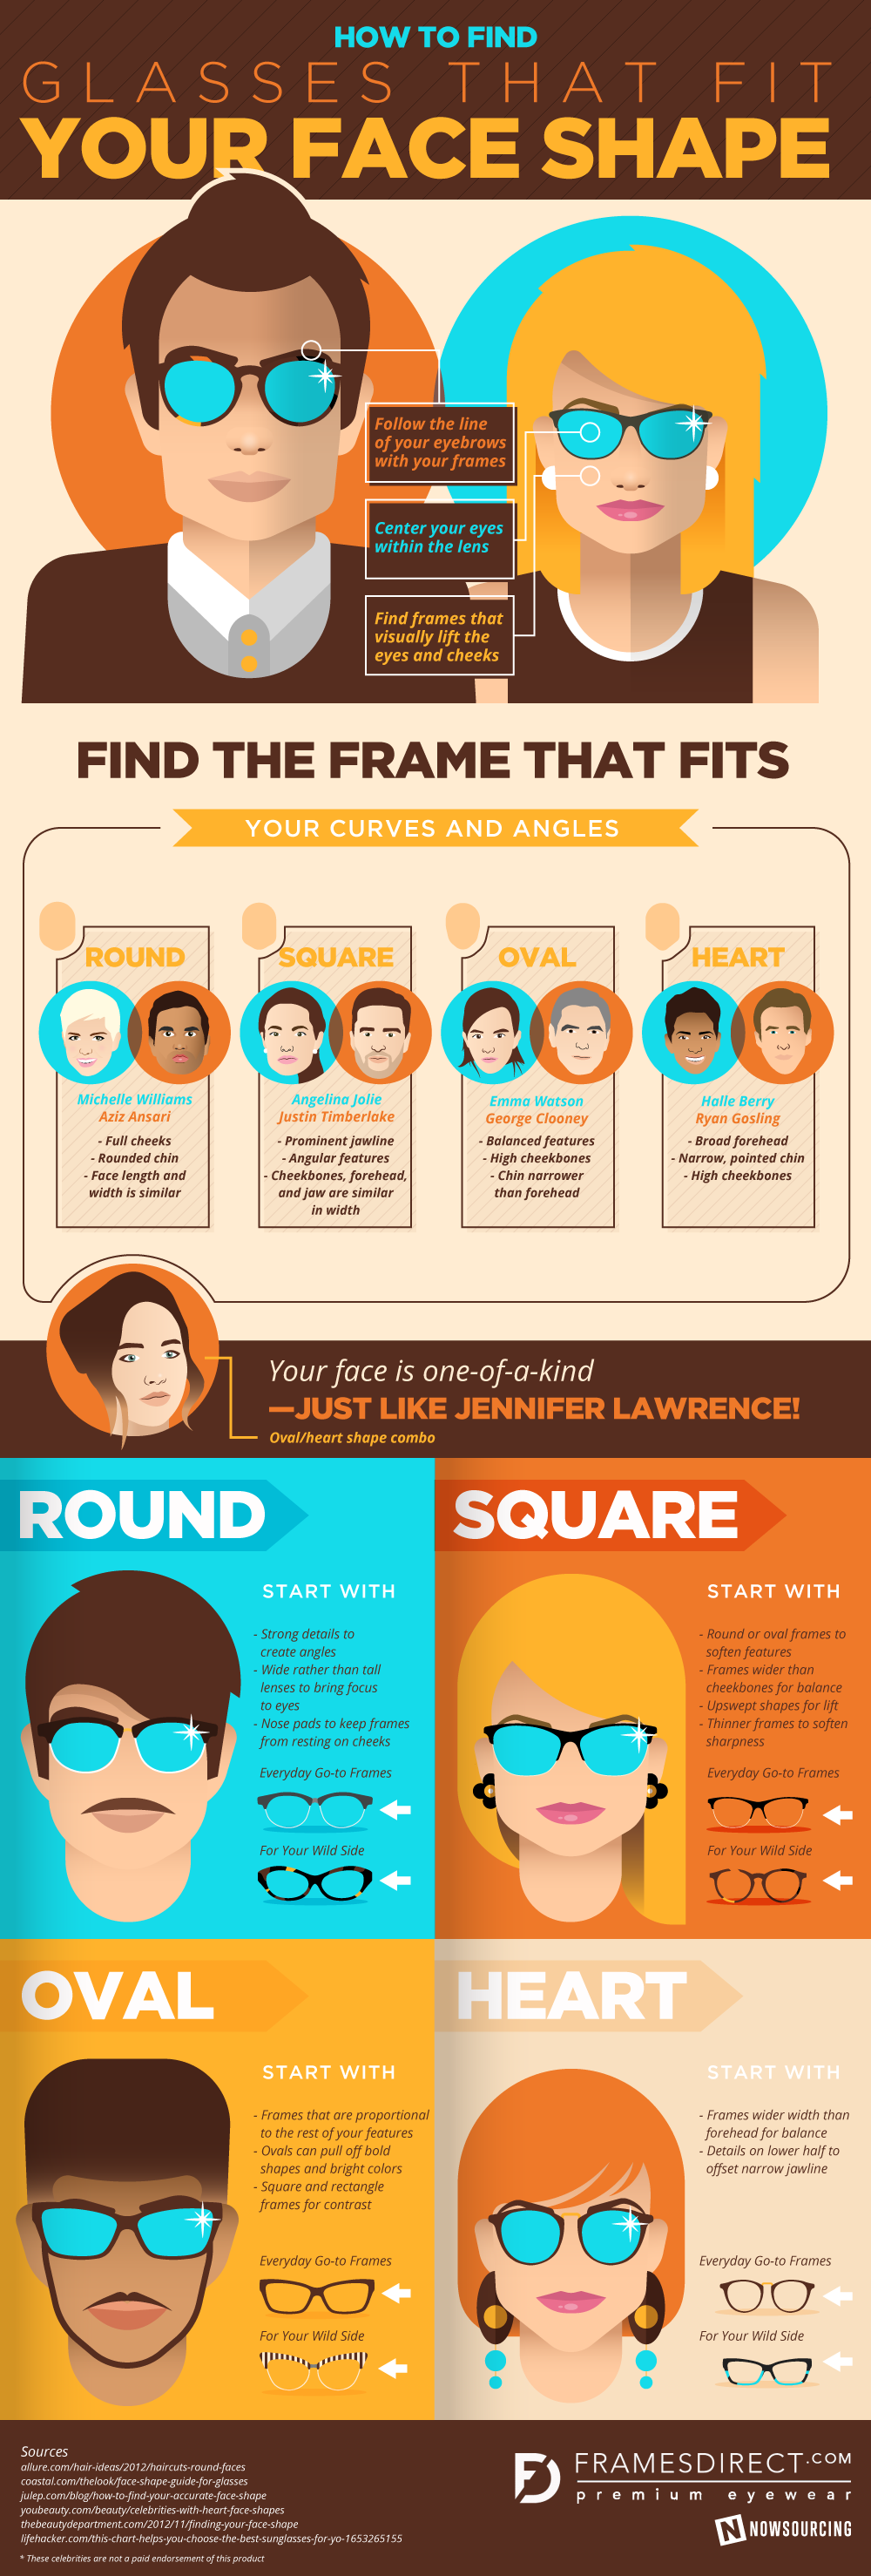 Glasses for your face shape Infographic